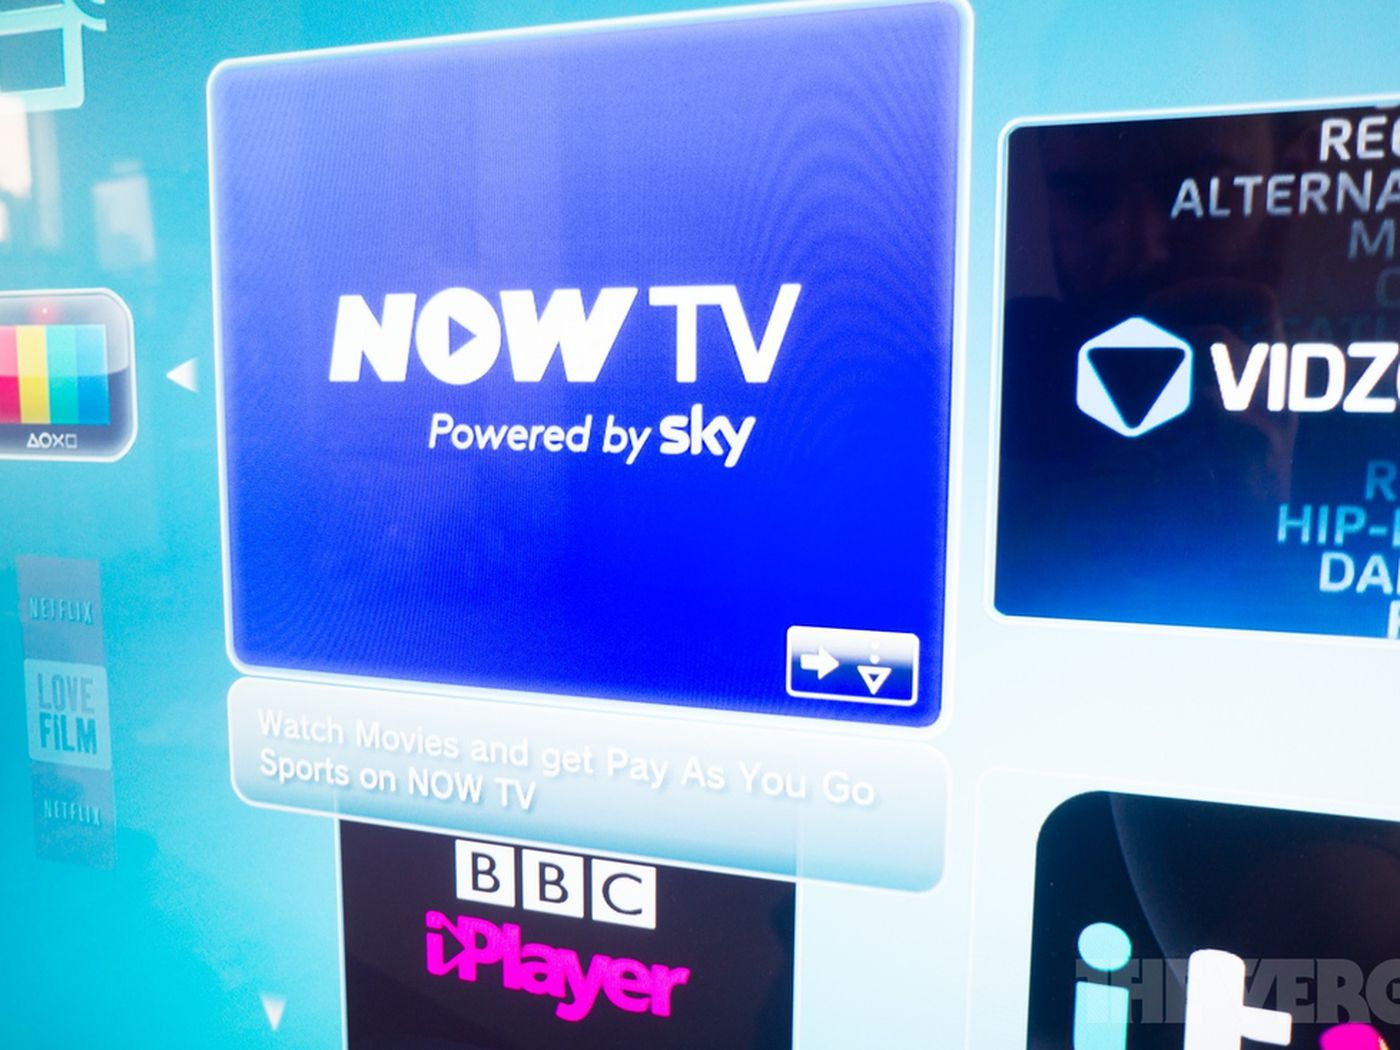 Sky S Now Tv Streaming Service Comes To Ps3 Almost A Year After Xbox The Verge